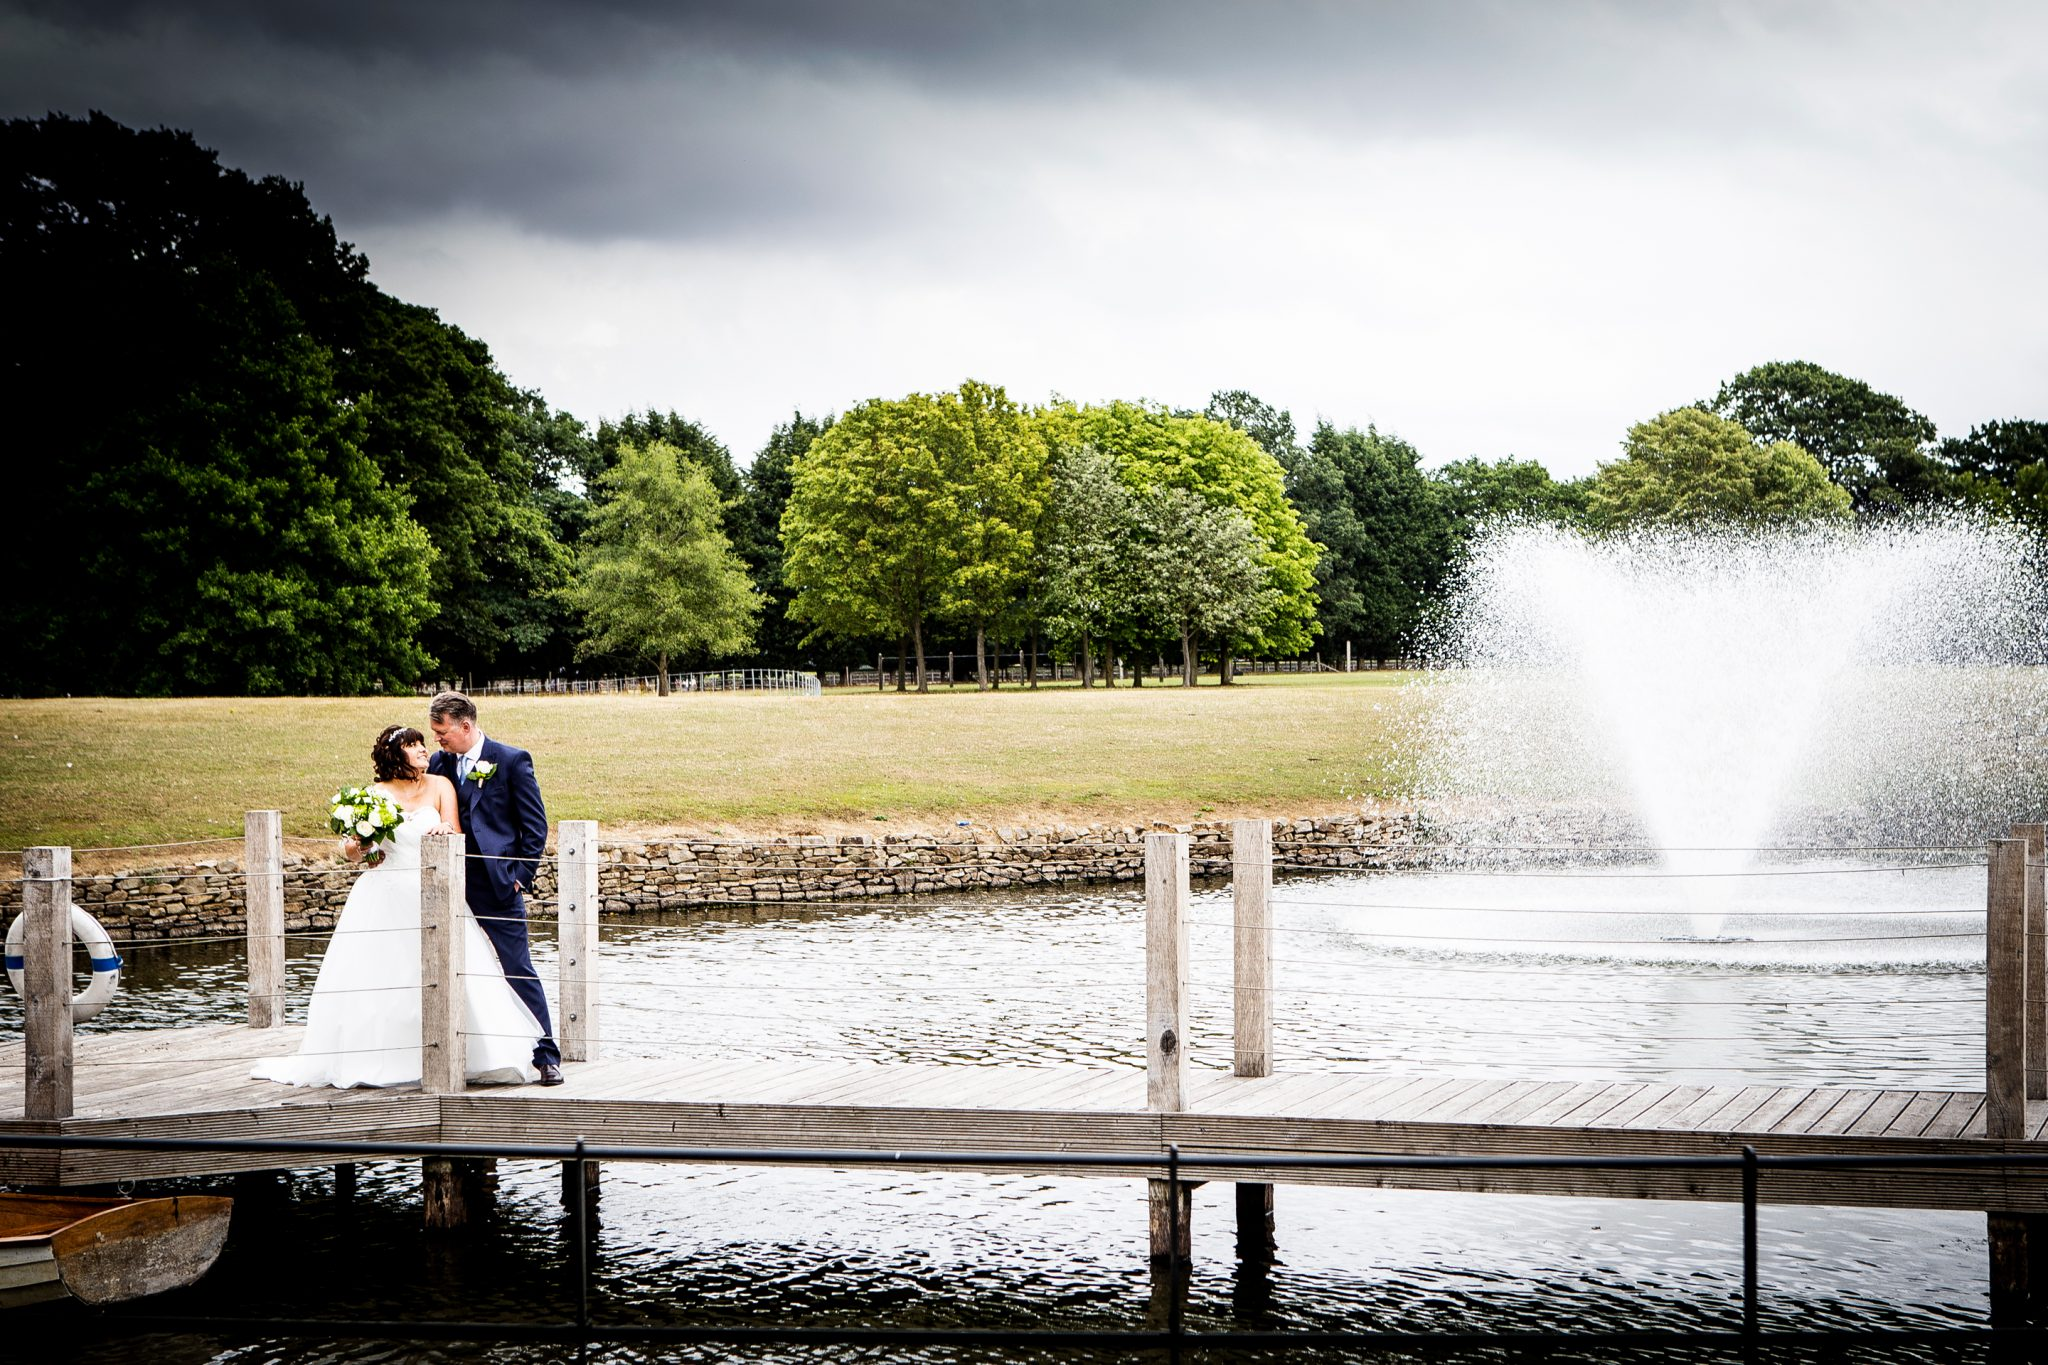 creative-wedding-photographer-at-Merrydale-Manor-Knutsford-Cheshire